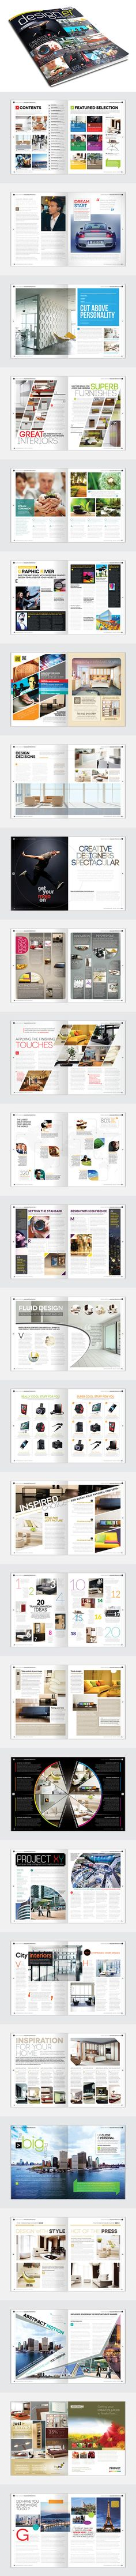 This is a professional magazine/newsletter InDesign template that can be used for any type of industry. The clean, crisp, clear and cutting edge layout and clean font type will help you enhance your company/industry to portray your message in a way that w…